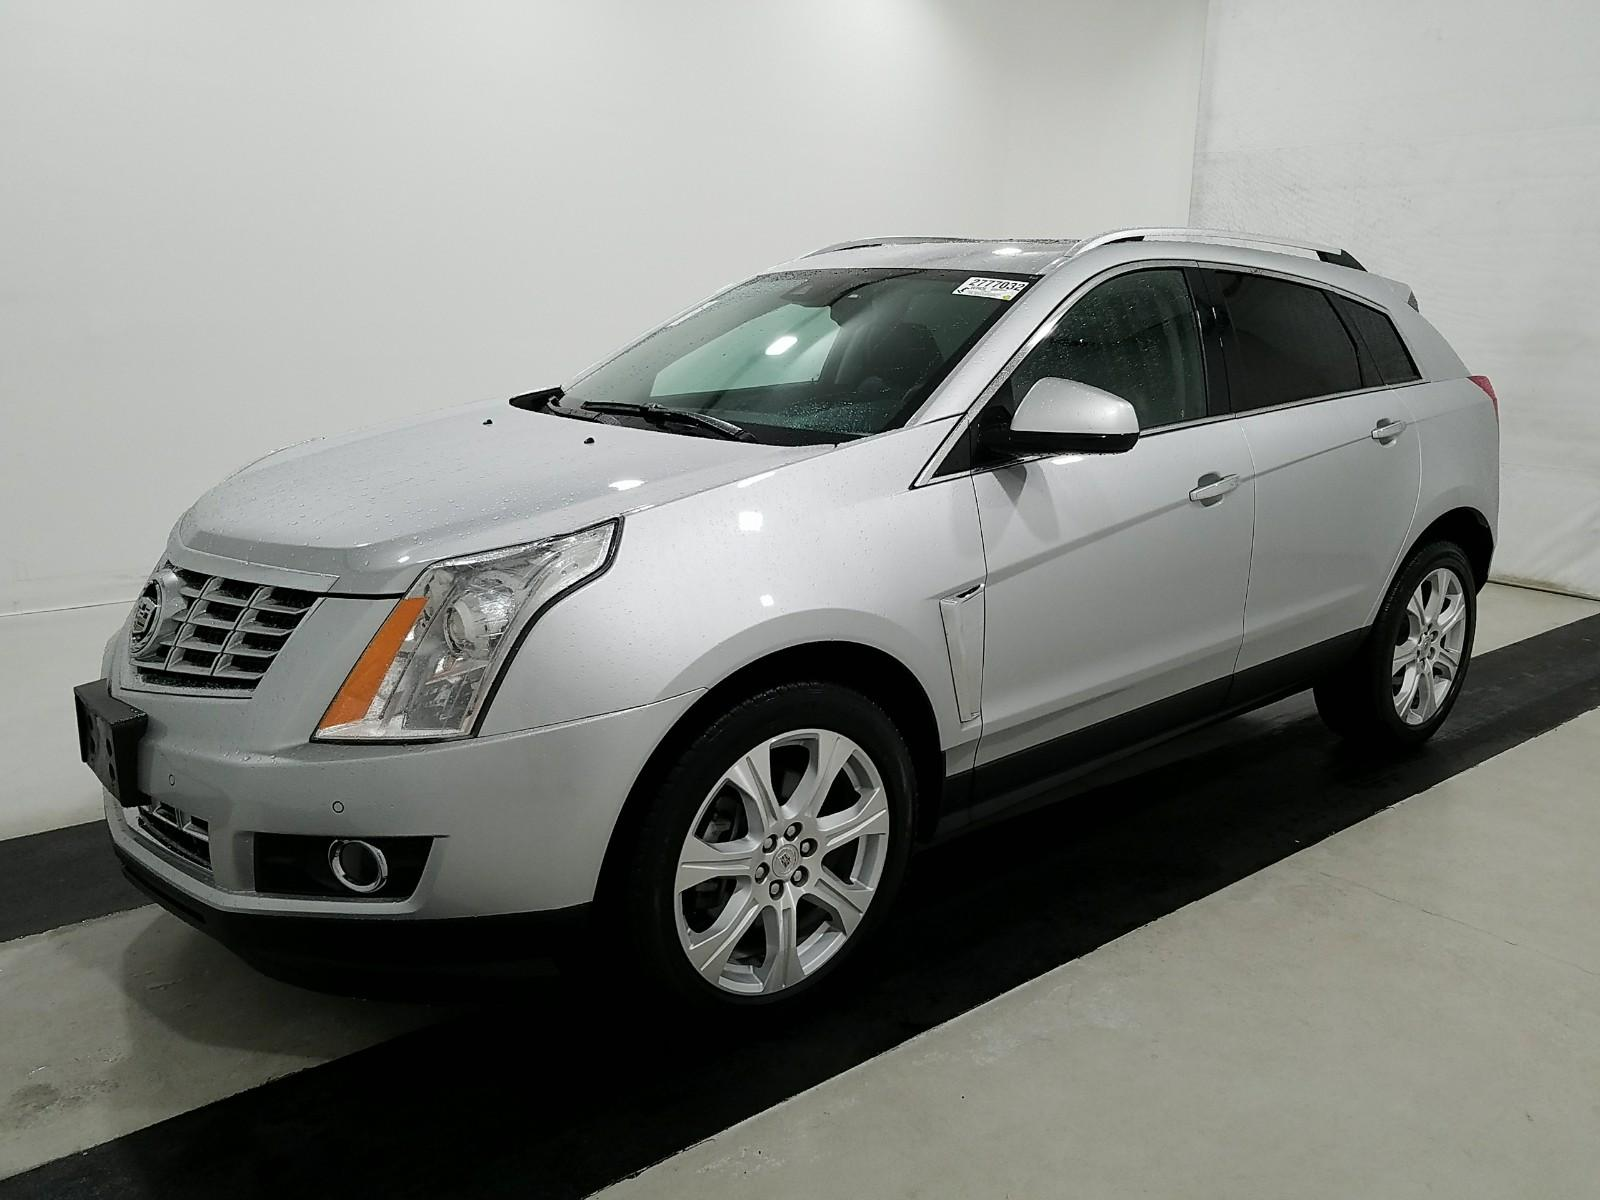 suv reviews drive front wheel photos base cadillac srx features photo price